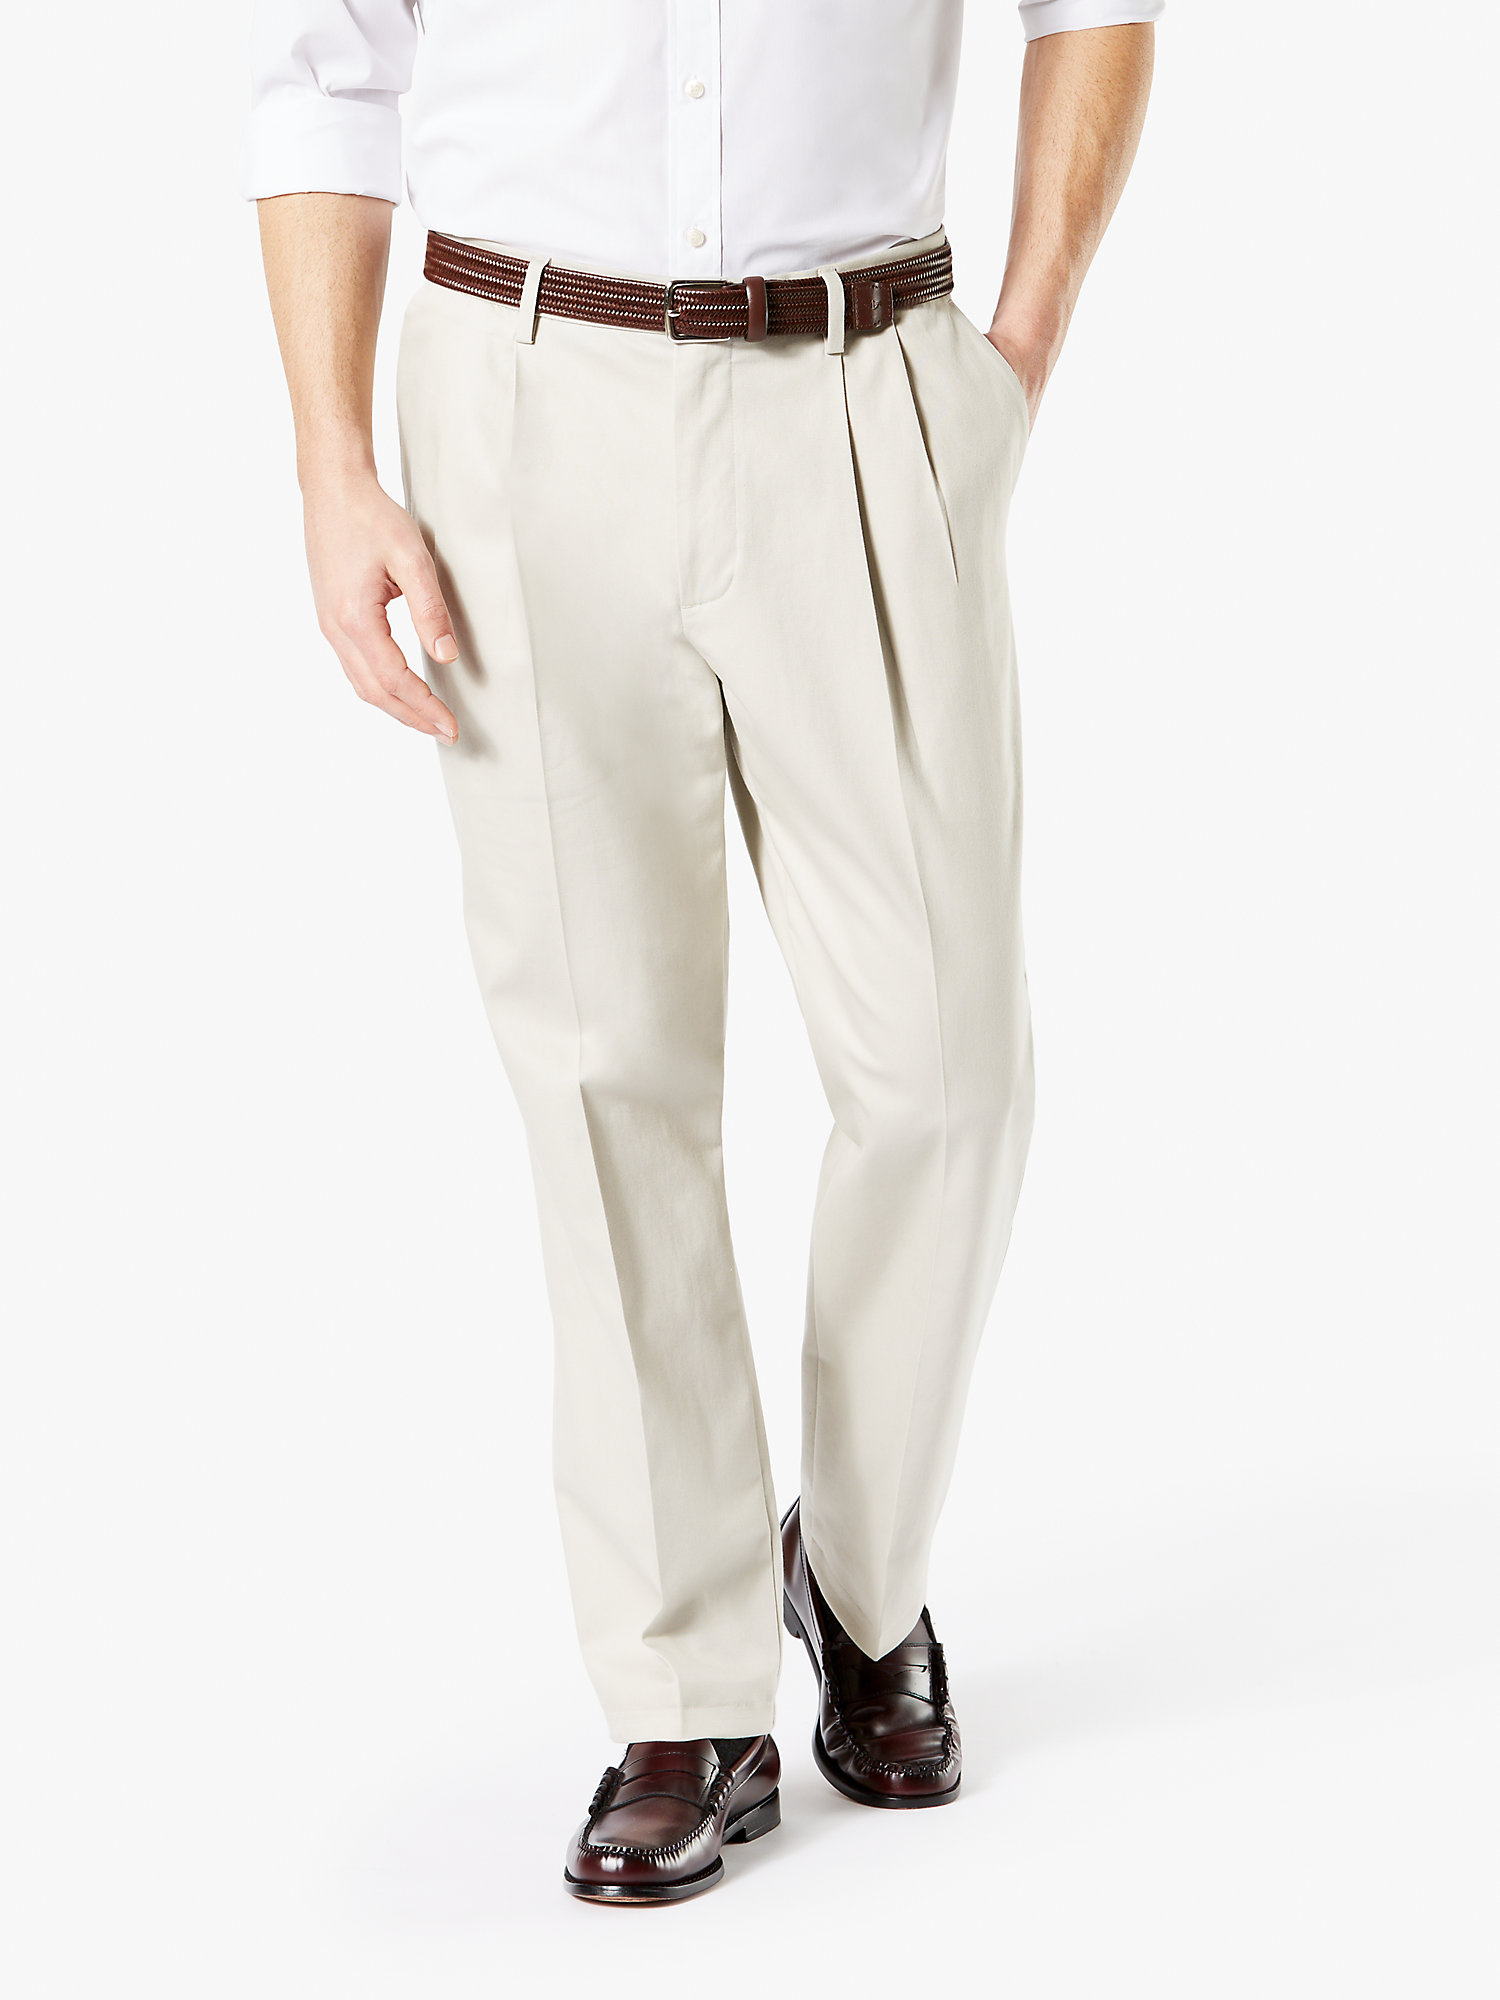 Men's Big & Tall Pleated Classic Fit Signature Khaki Lux Cotton Stretch Pants